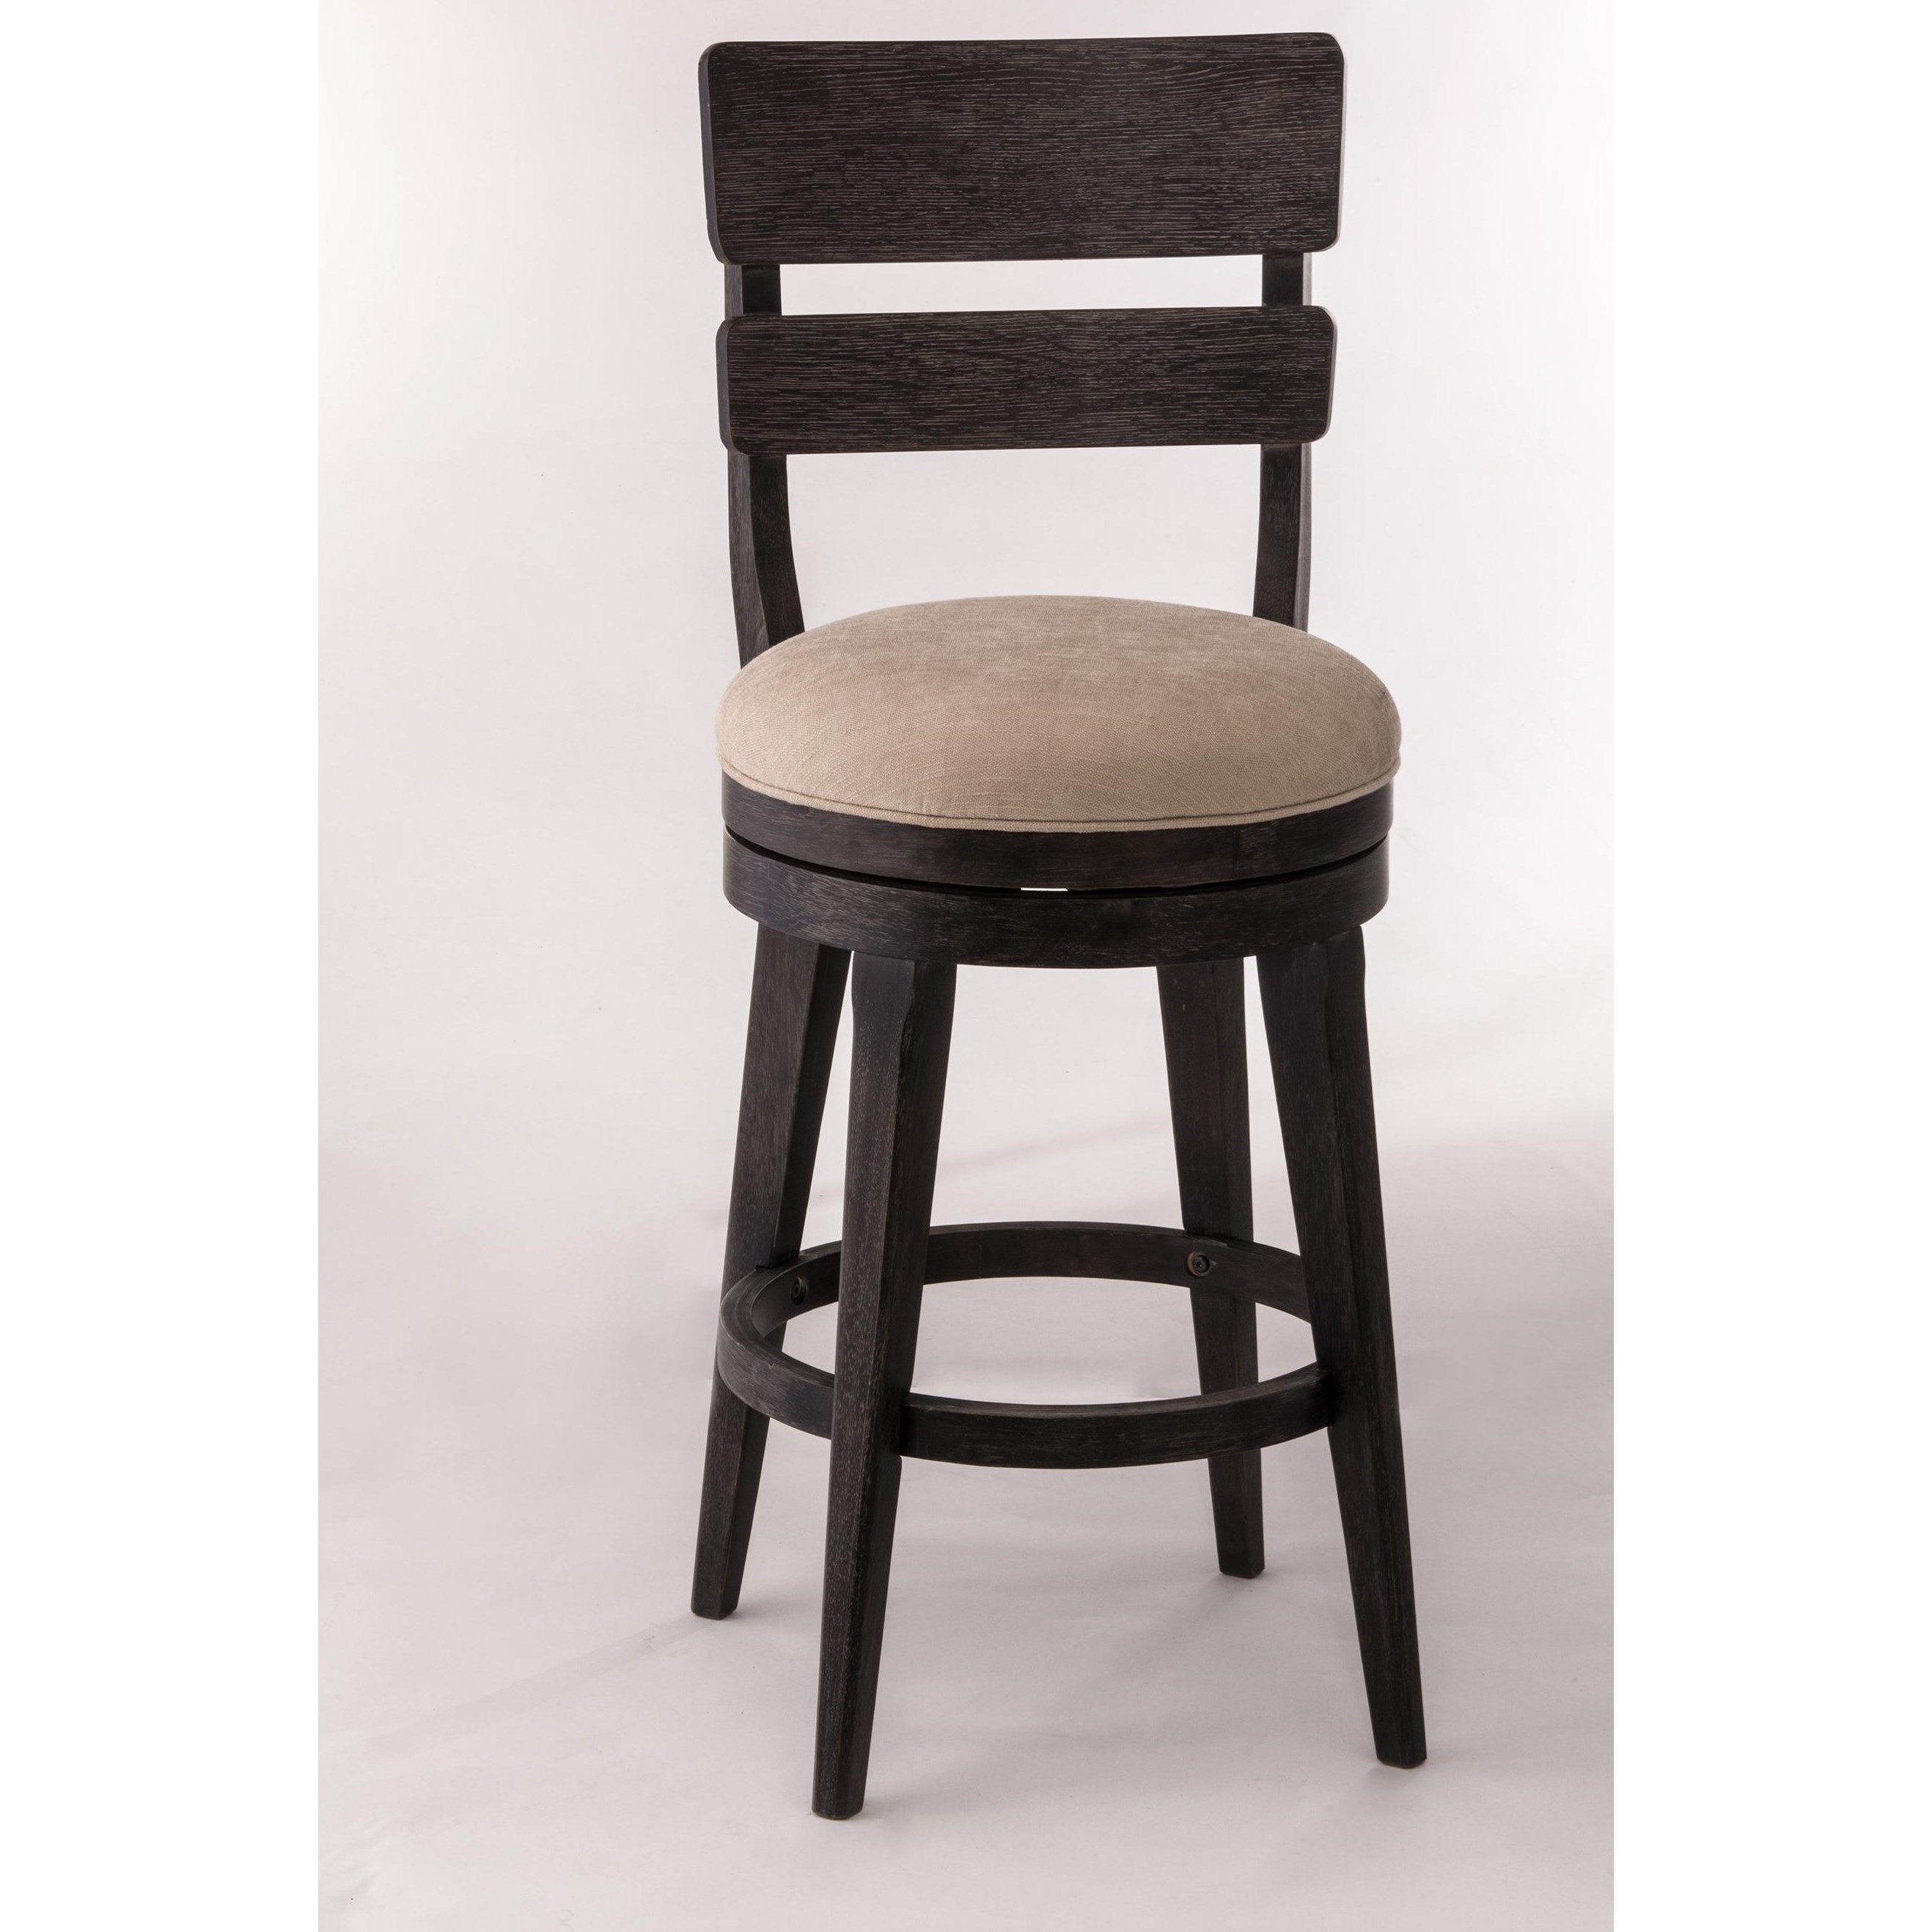 Hillsdale Wood Stools 5911 832 Upholstered Swivel Bar Stool Great American Home Store Bar Stools